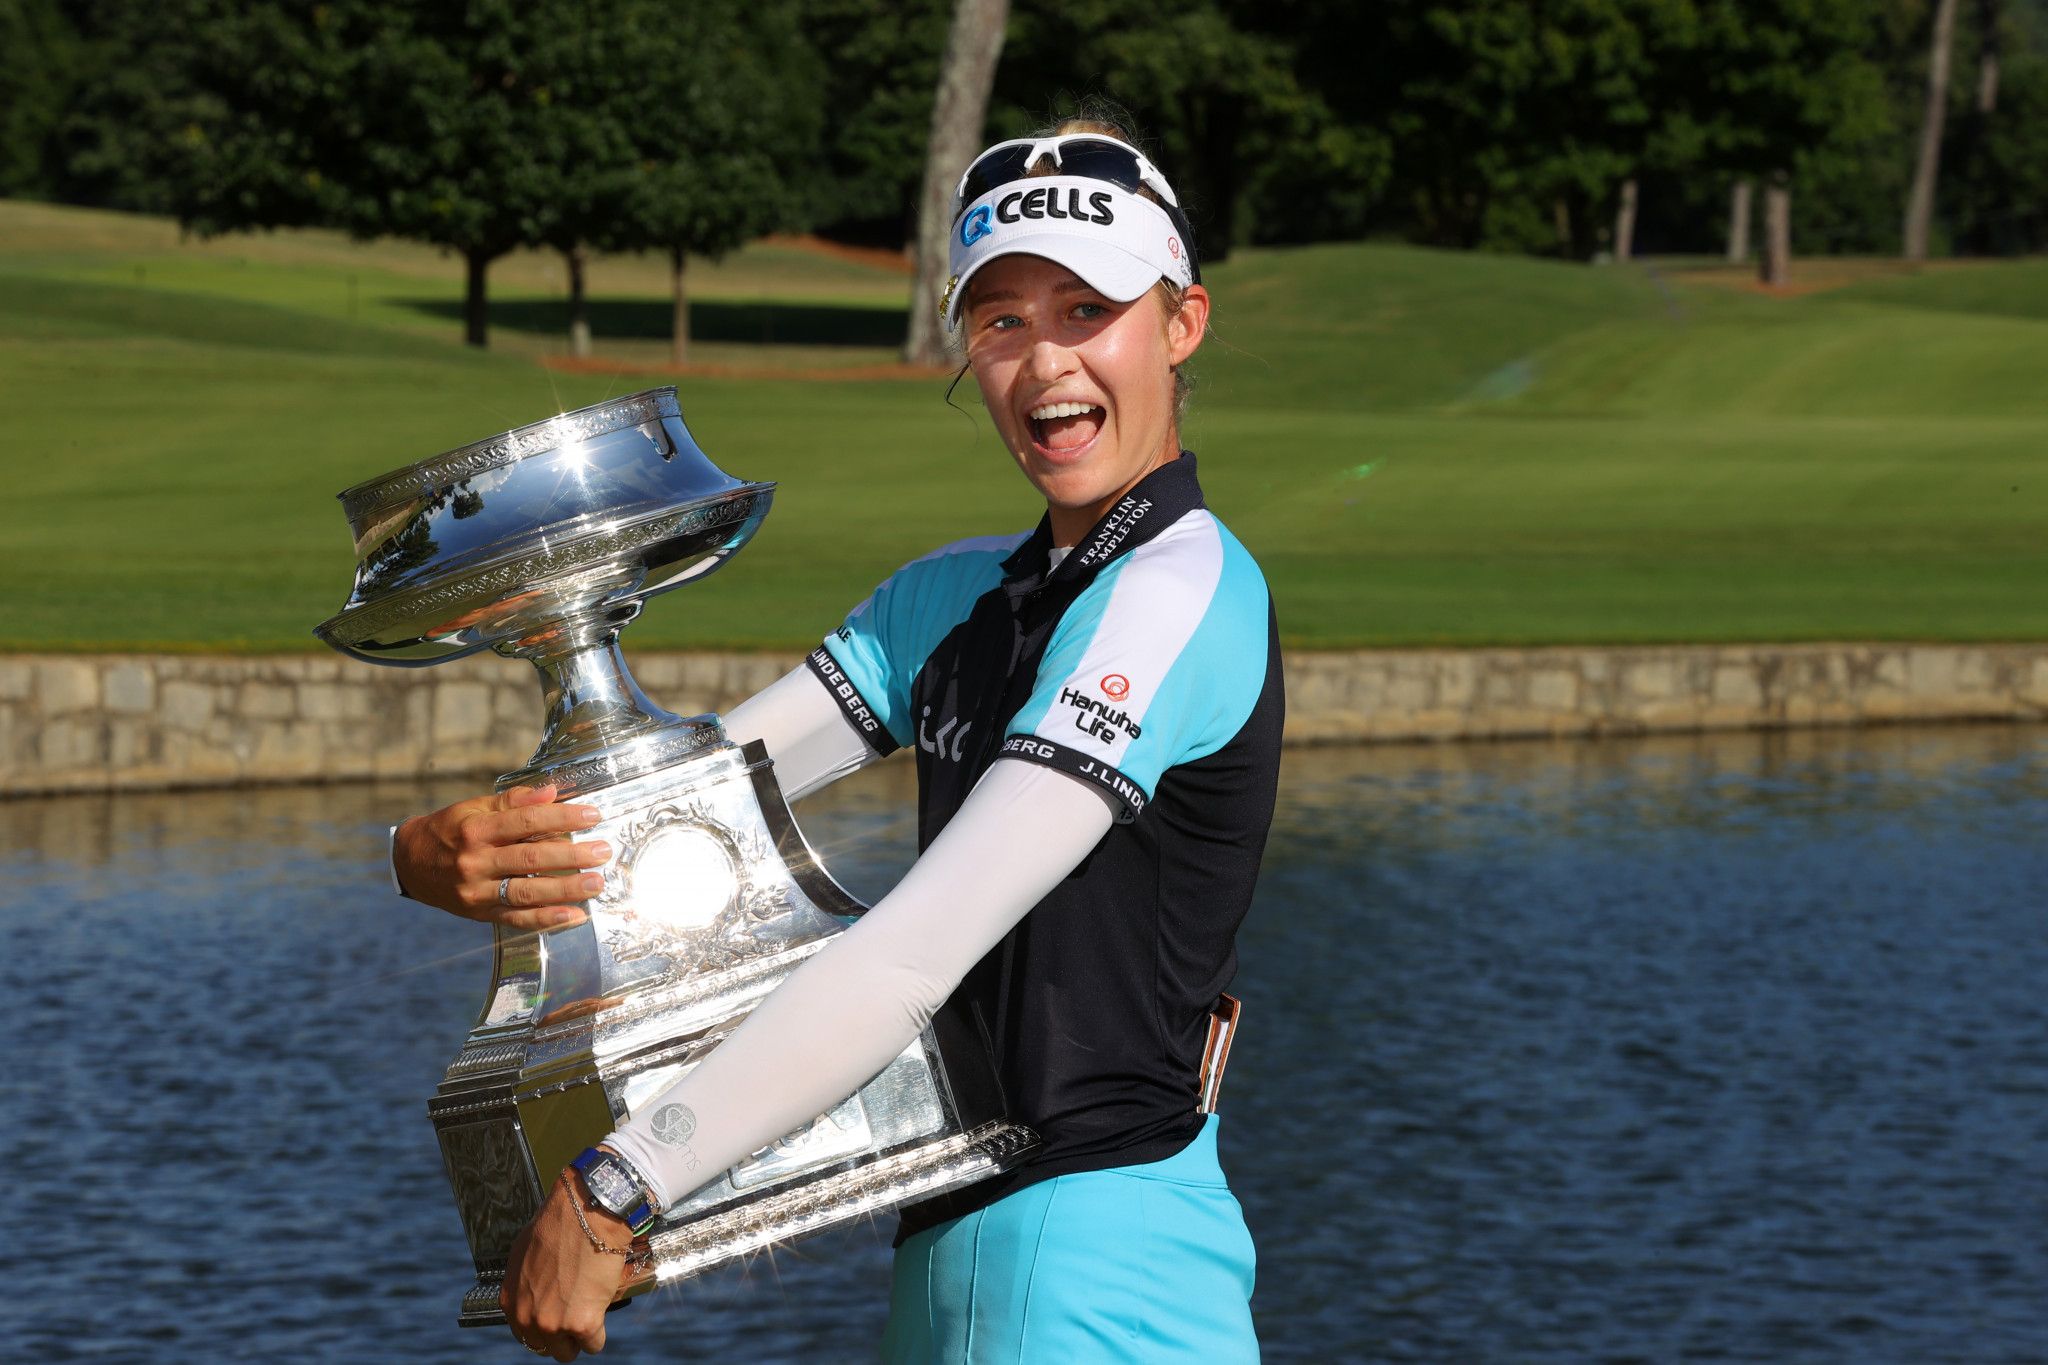 The United States' Nelly Korda became world number one for the first time after claiming her maiden major title at the Atlanta Athletic Club ©Getty Images